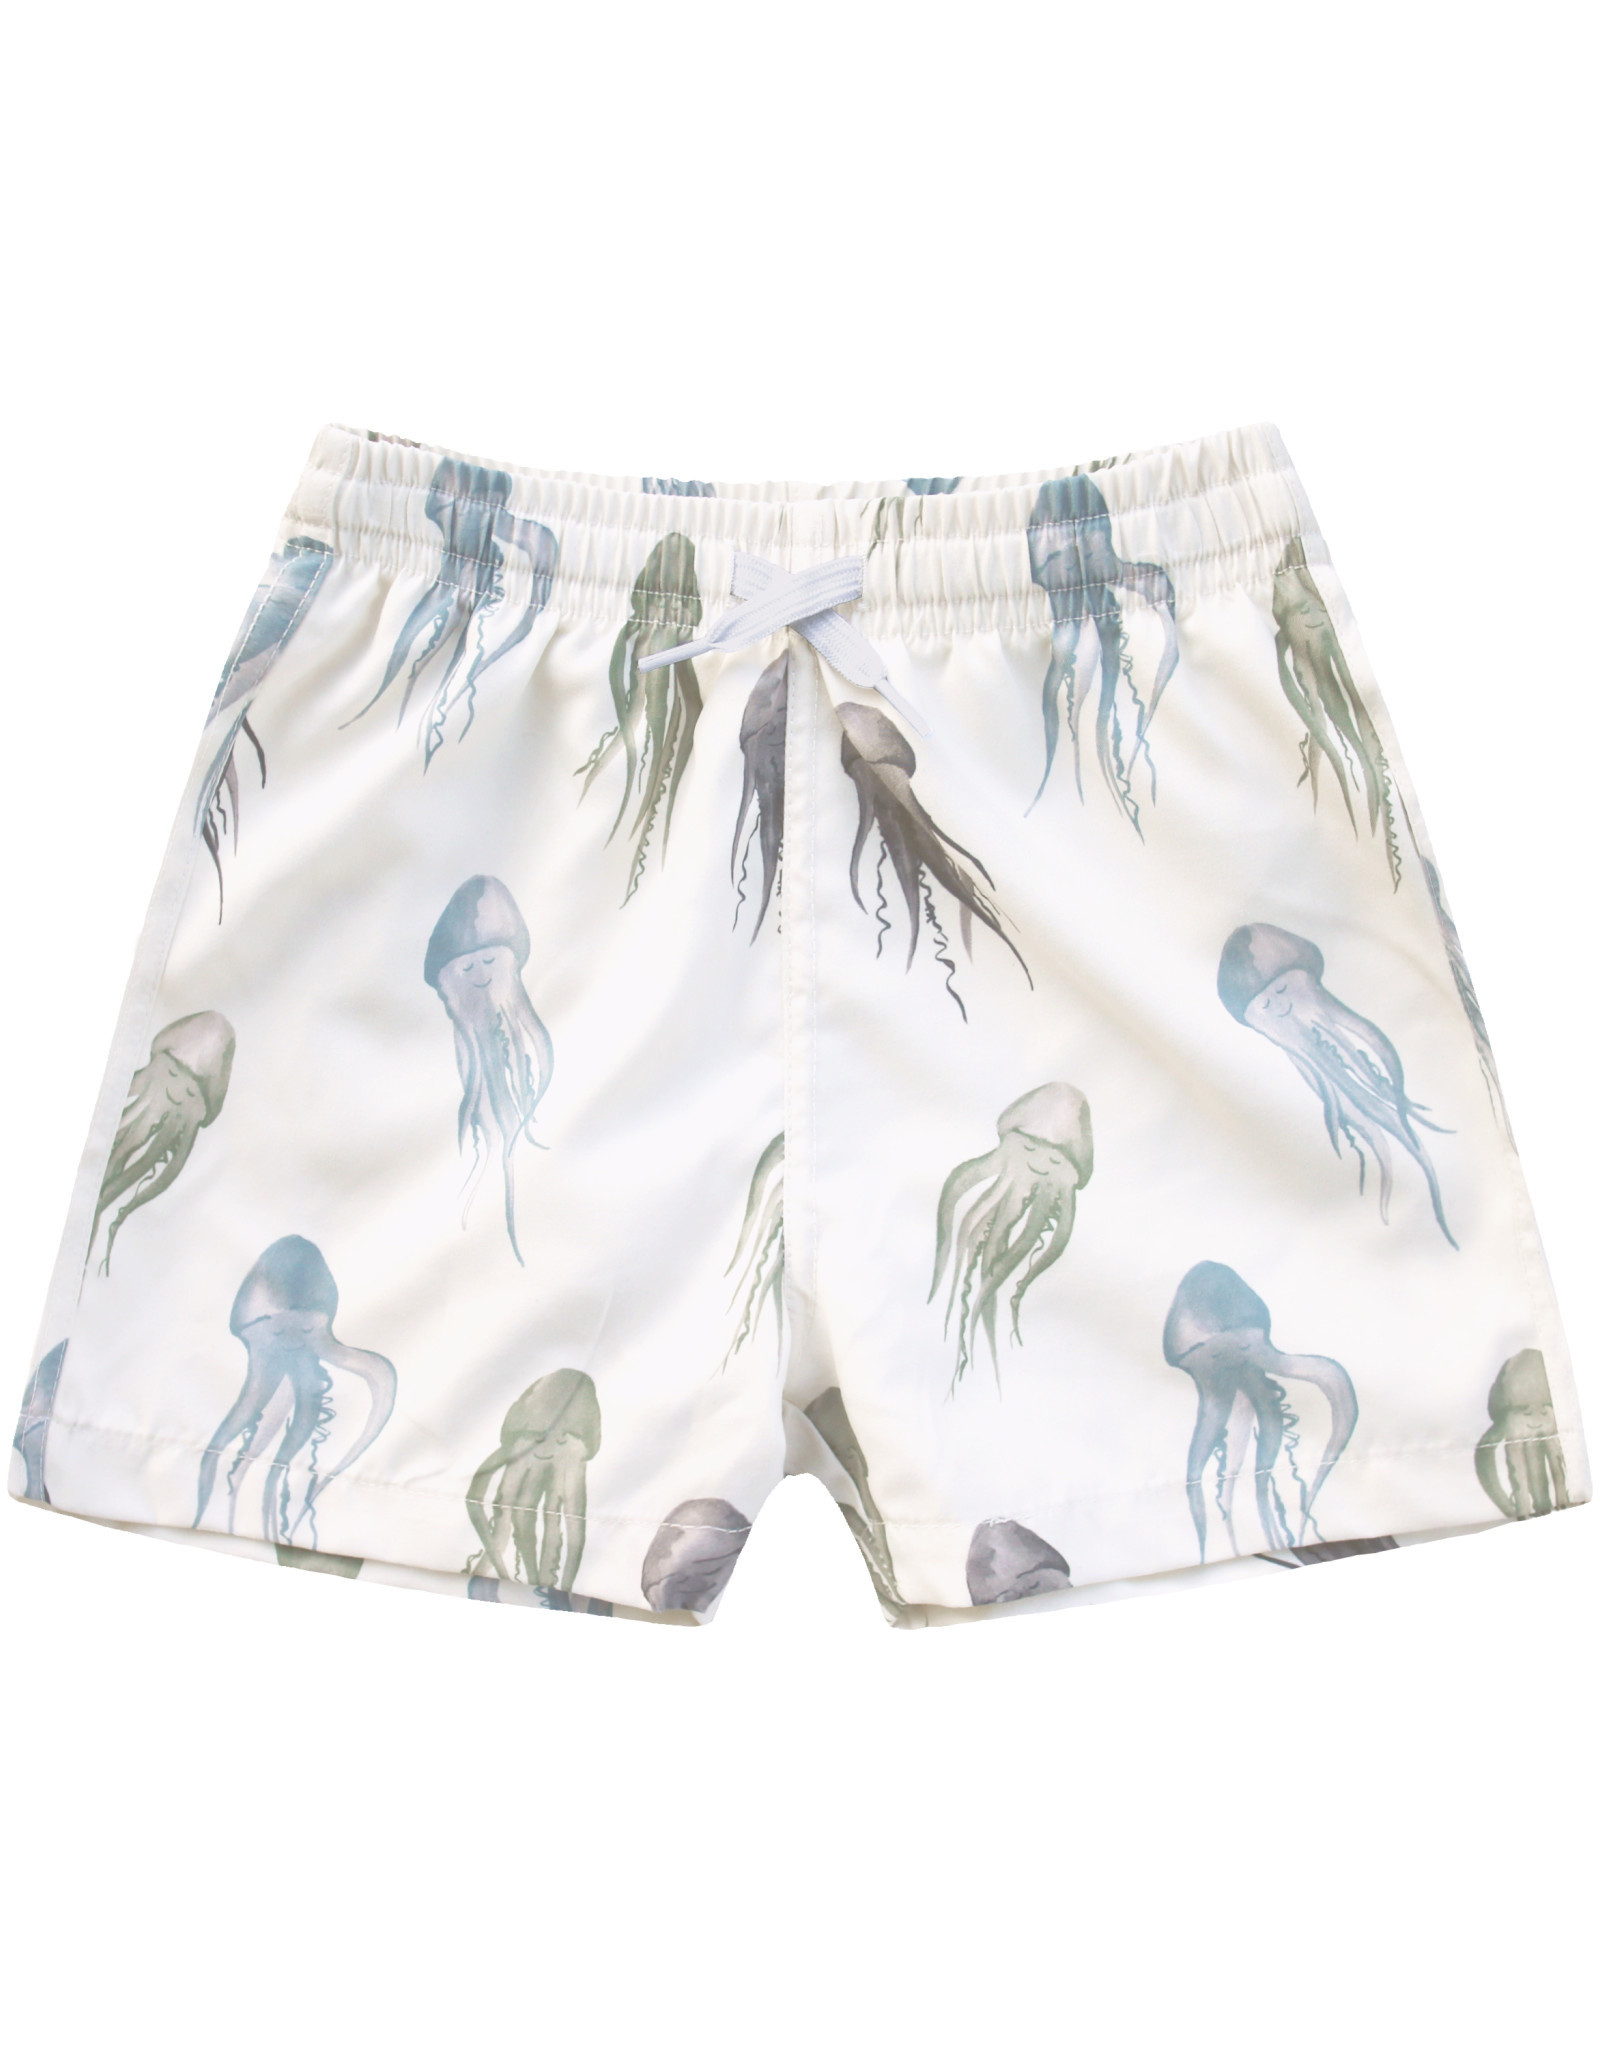 Your Wishes Your Wishes Jellyfish Swimshorts